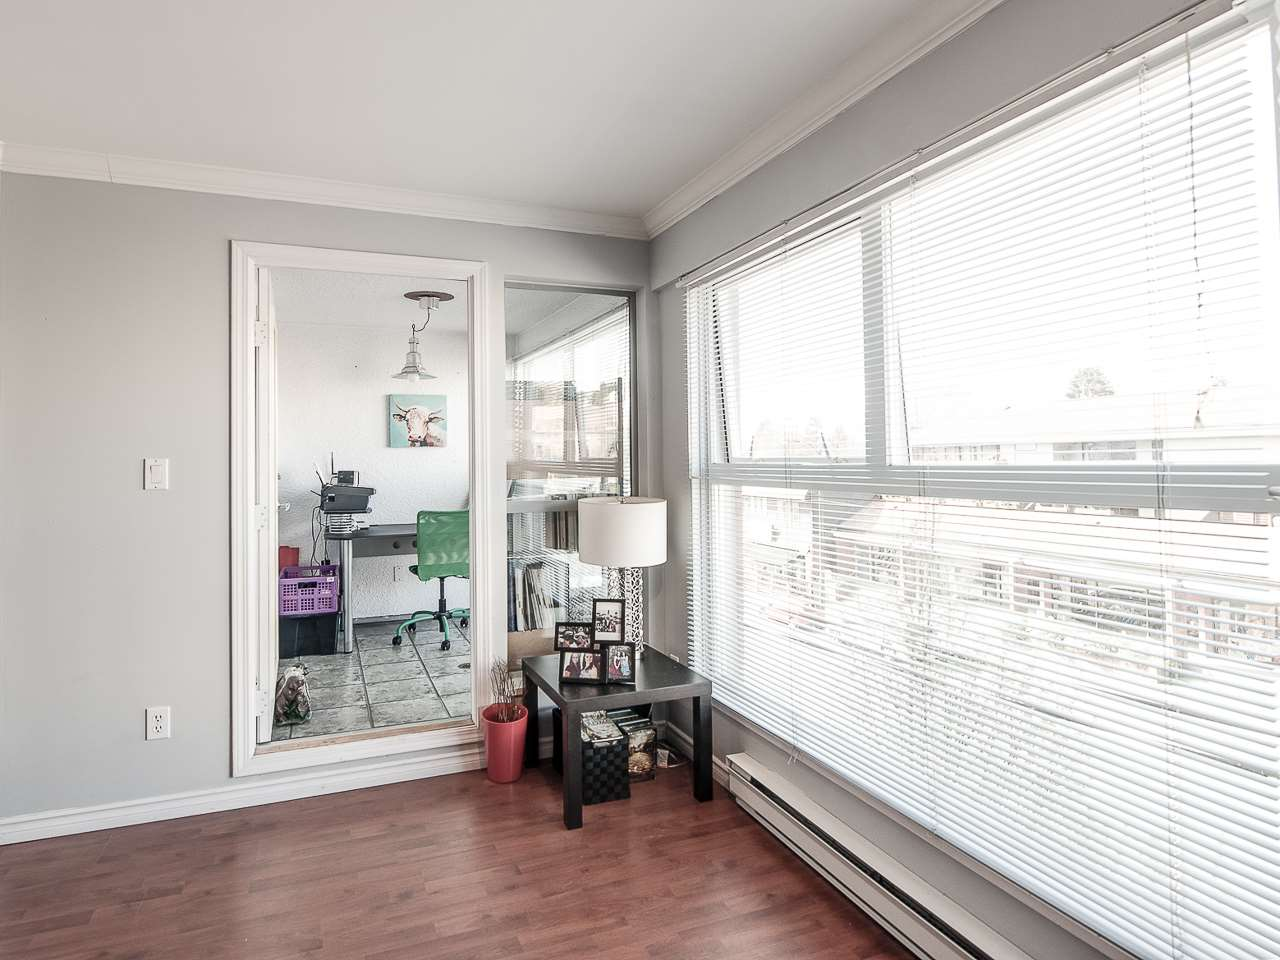 Photo 15: 304 2025 STEPHENS STREET in Vancouver: Kitsilano Condo for sale (Vancouver West)  : MLS® # R2158946